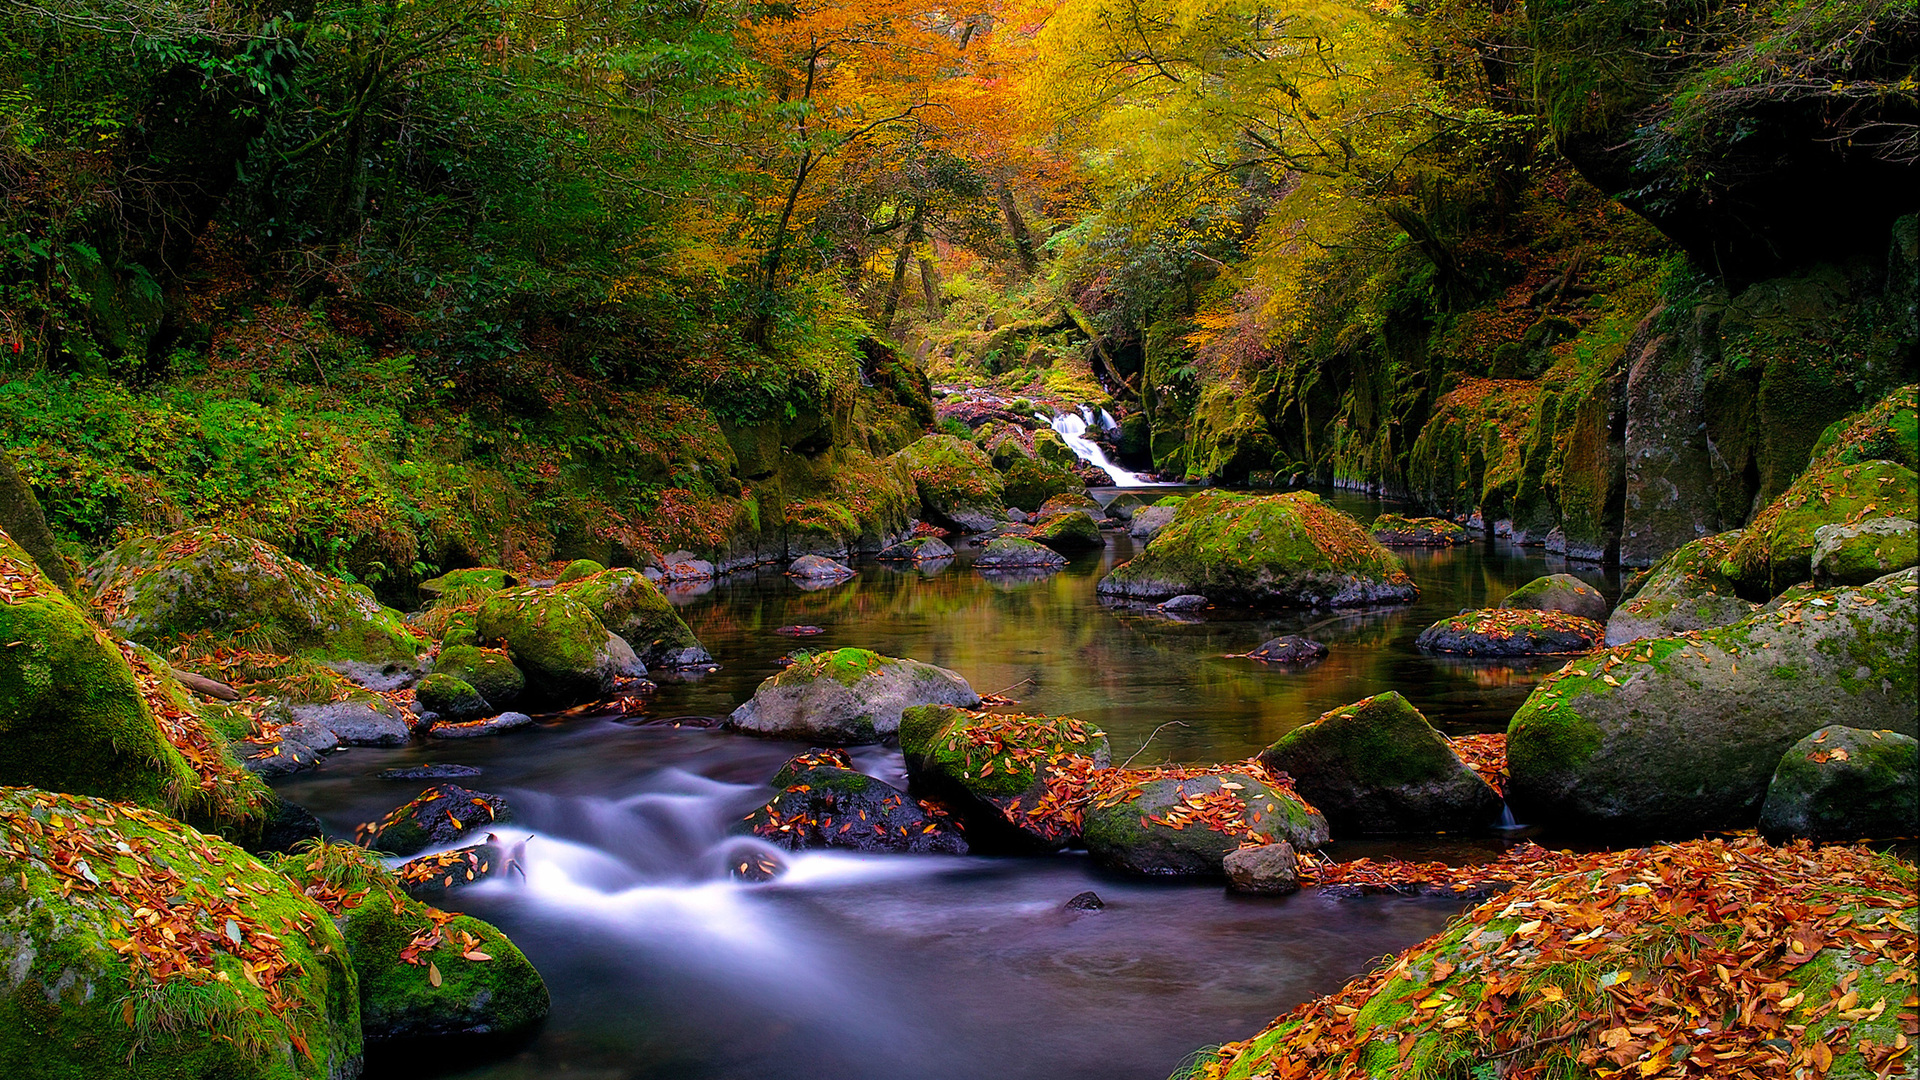 Scenic Image Galleries , HD Wallpaper & Backgrounds